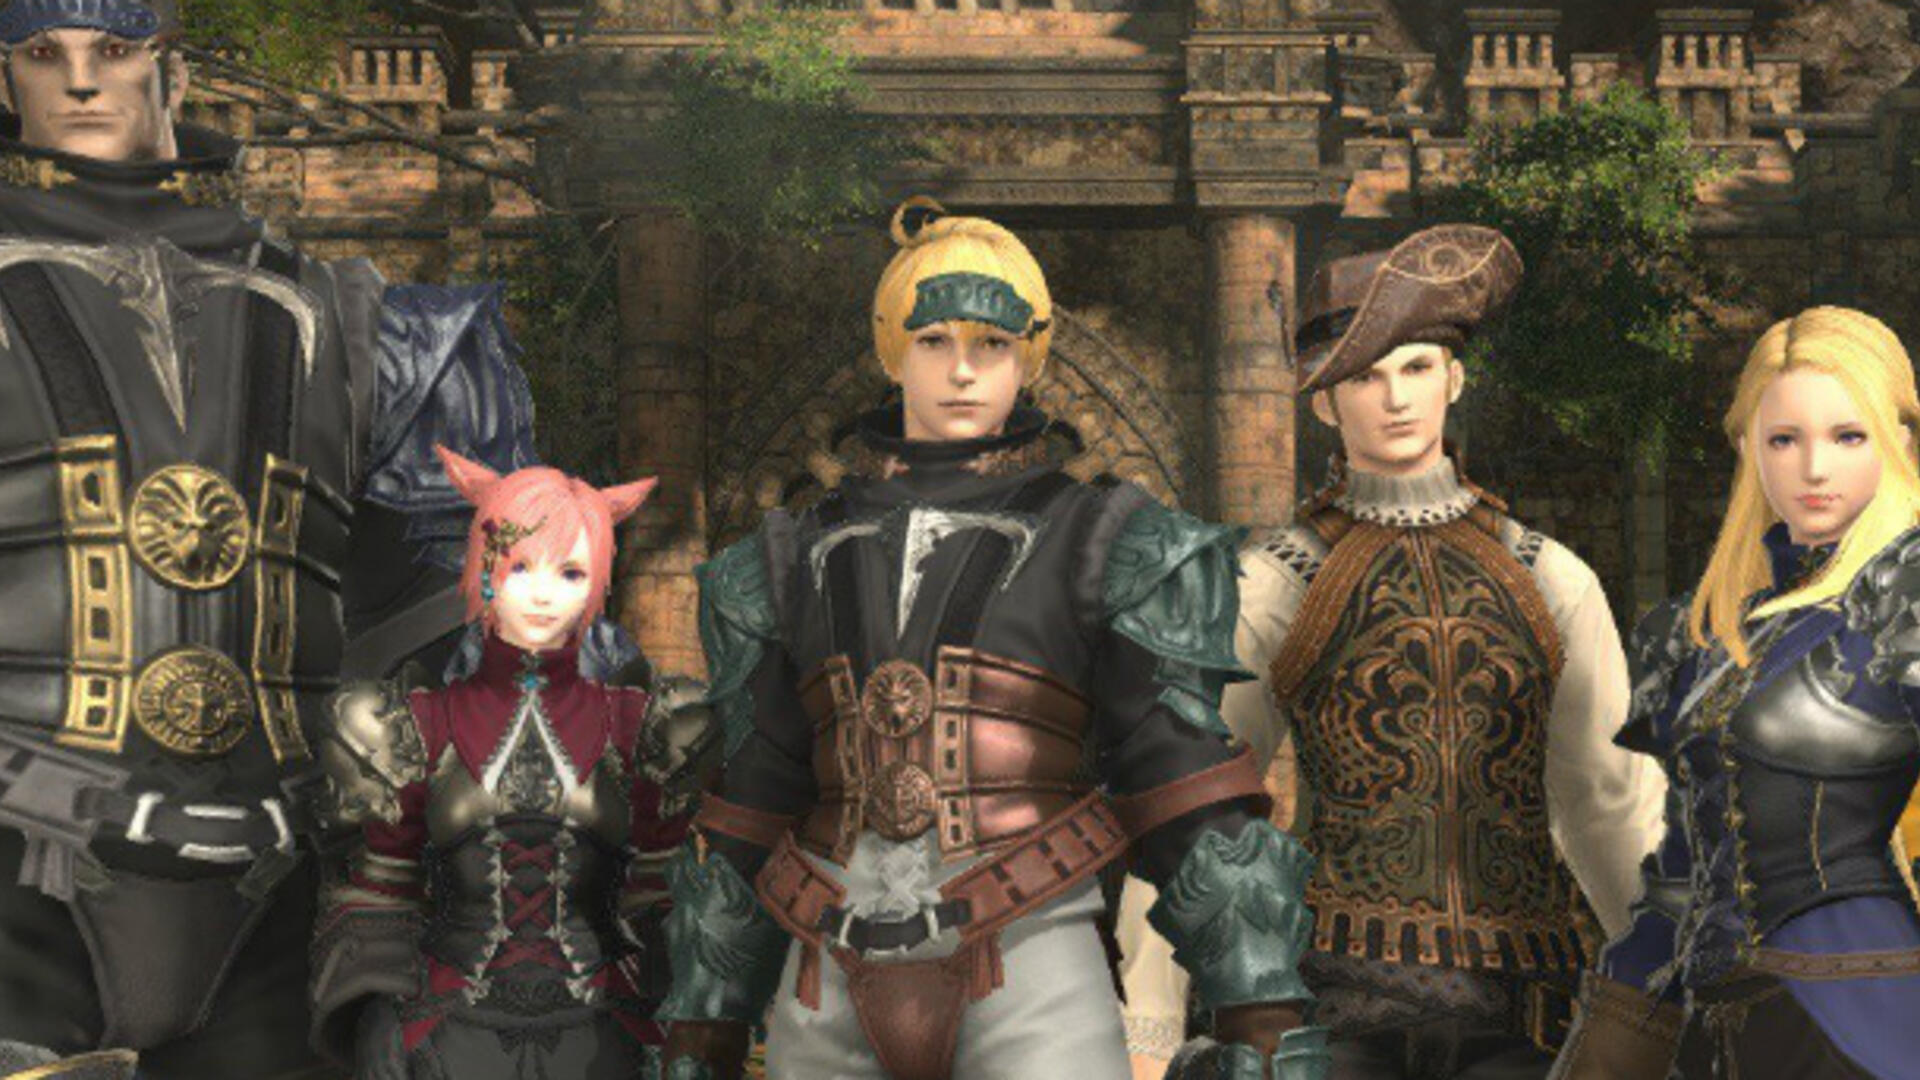 Final Fantasy 14 Patch 4 5 Brings An Old Friend Back to Ivalice